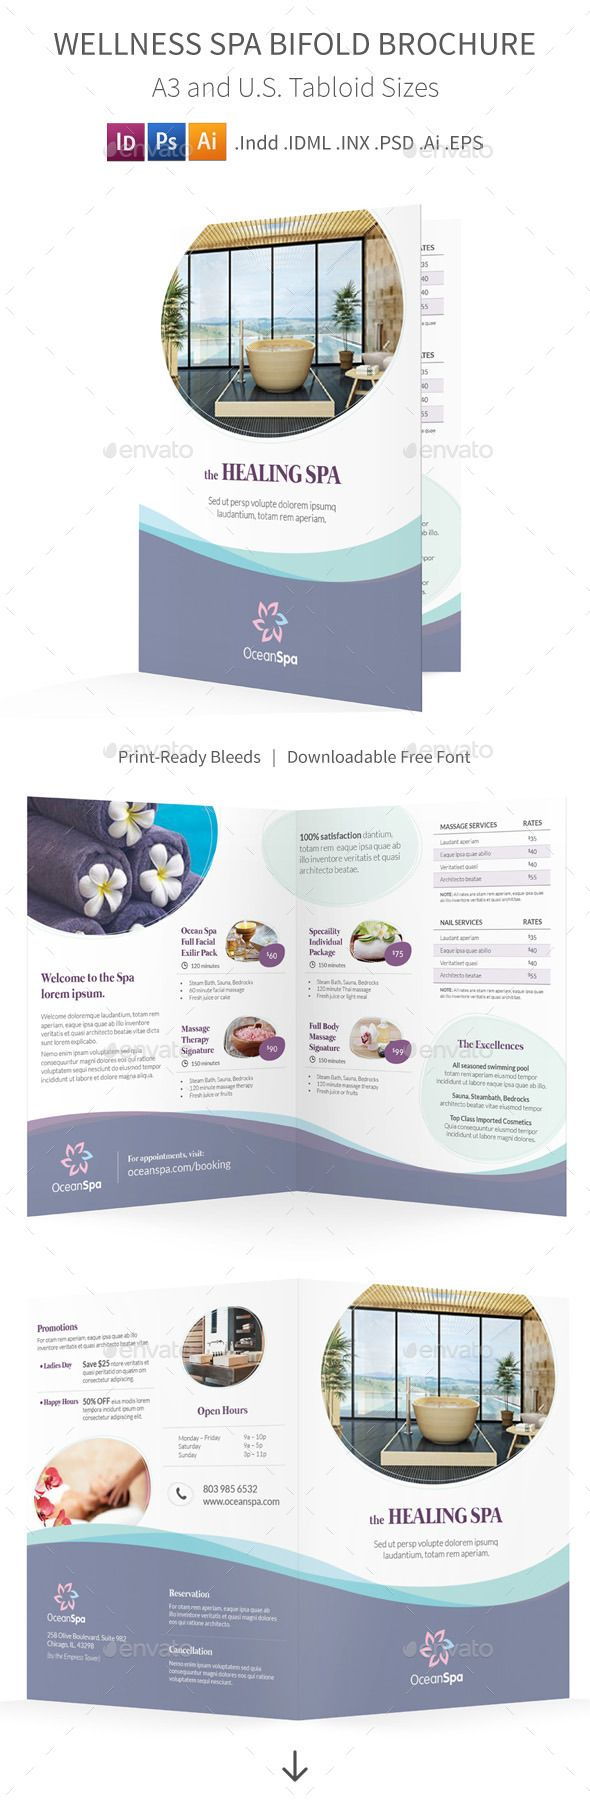 Wellness Spa Bifold  Halffold Brochure  Wellness Spa Brochure